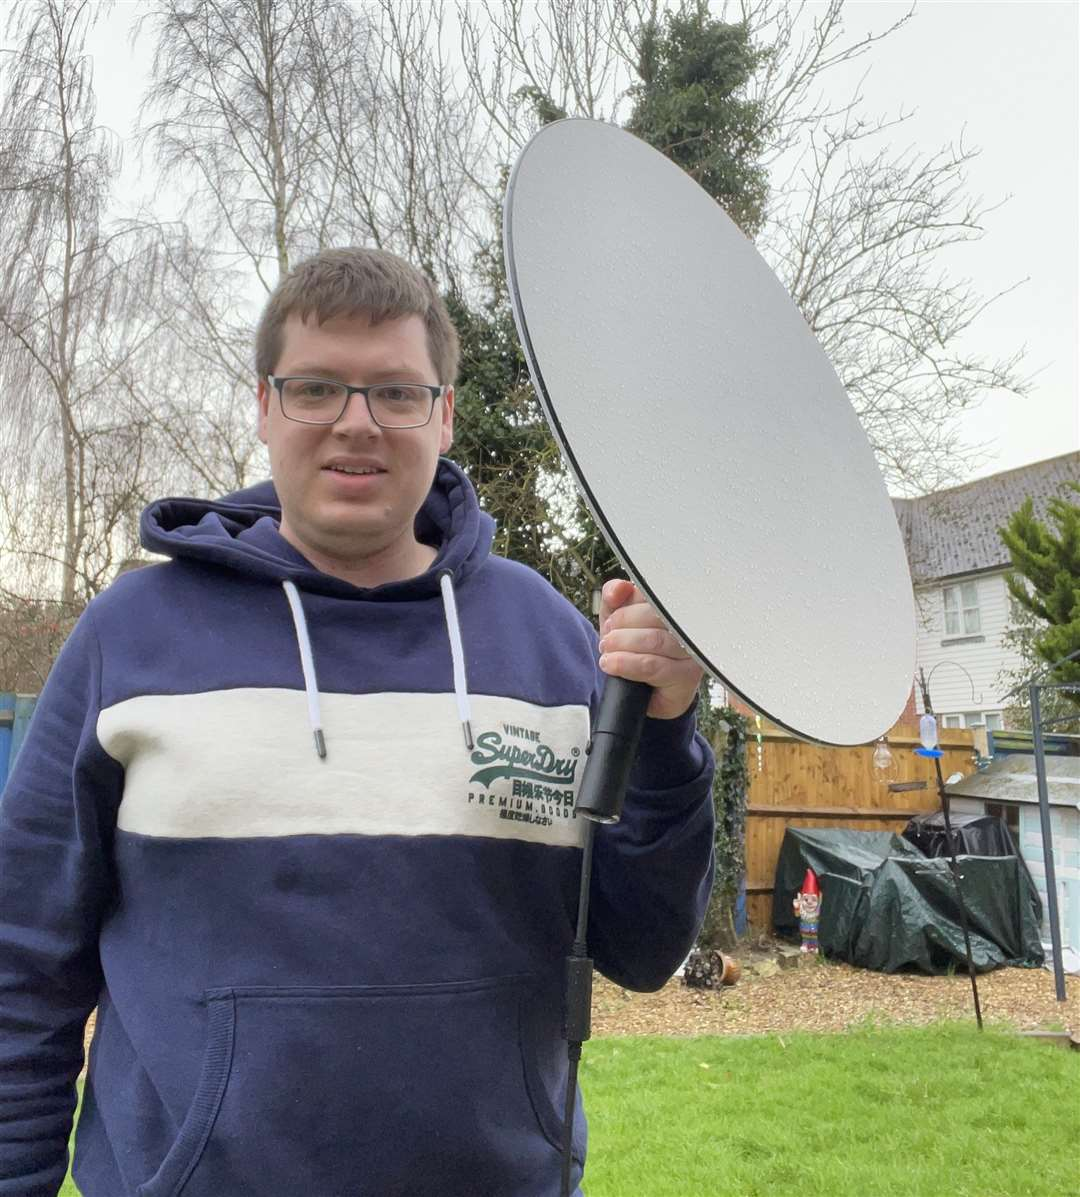 Aaron Wilkes, from Bredgar, Sittingbourne, is one of a handful of people in the UK to test out Elon Musk's new internet project